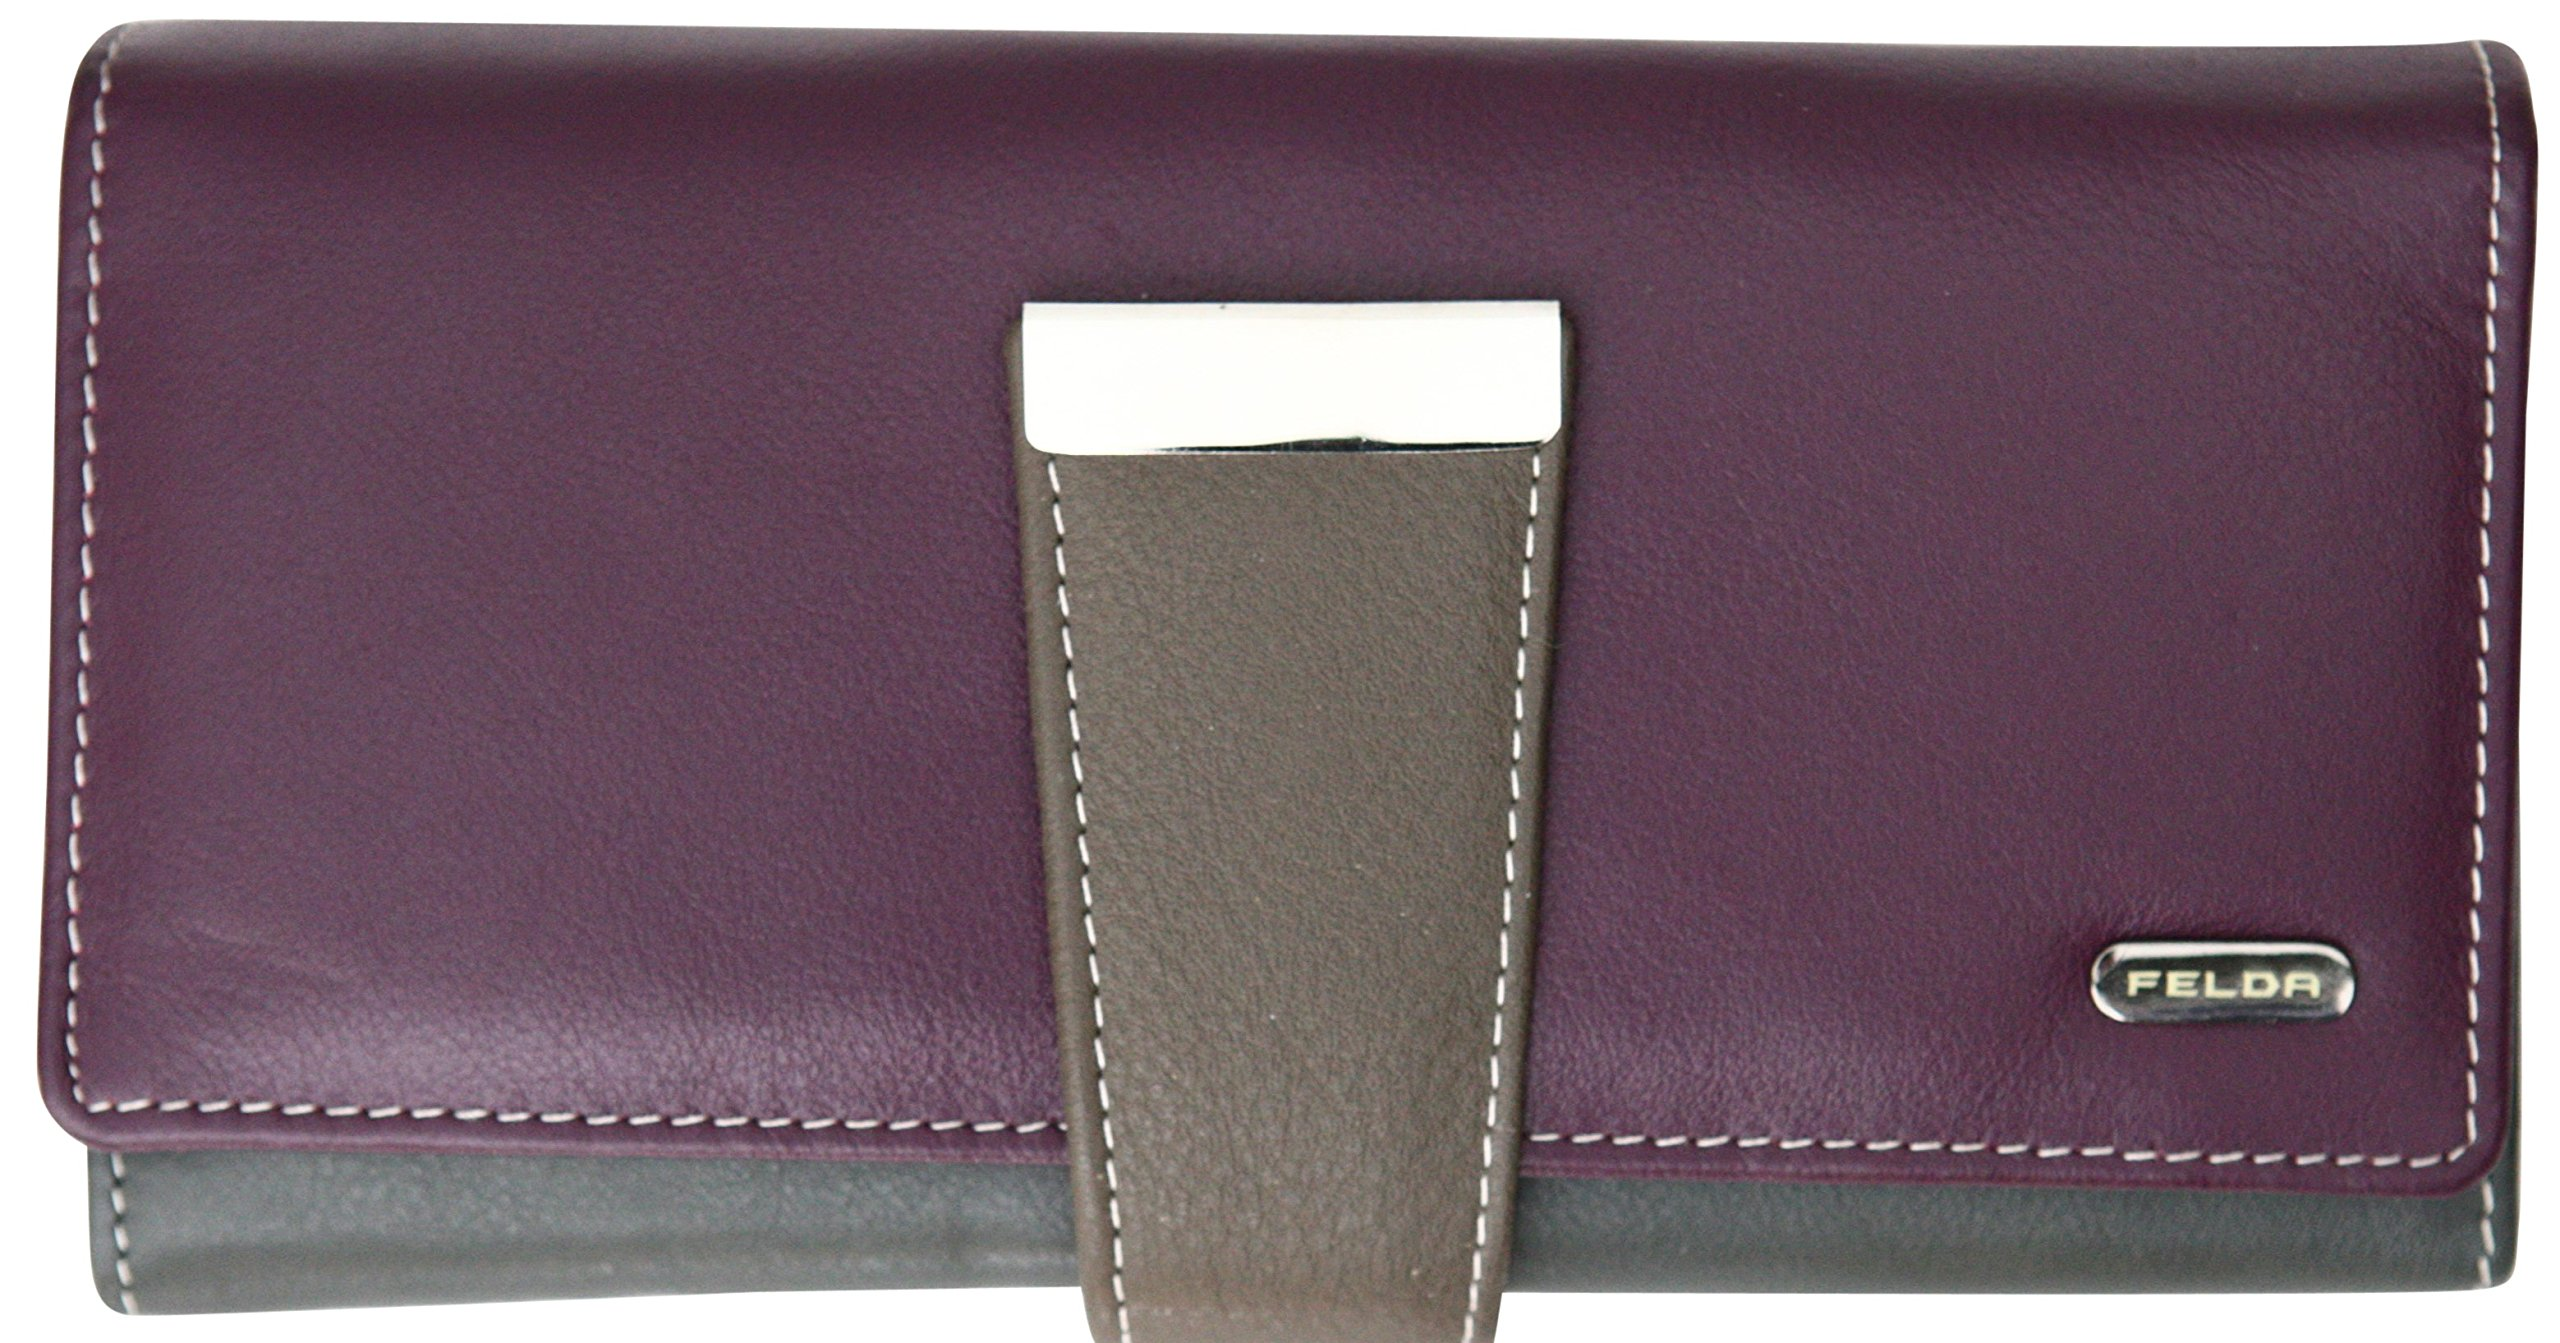 Leather wallet are the perfect gift for her